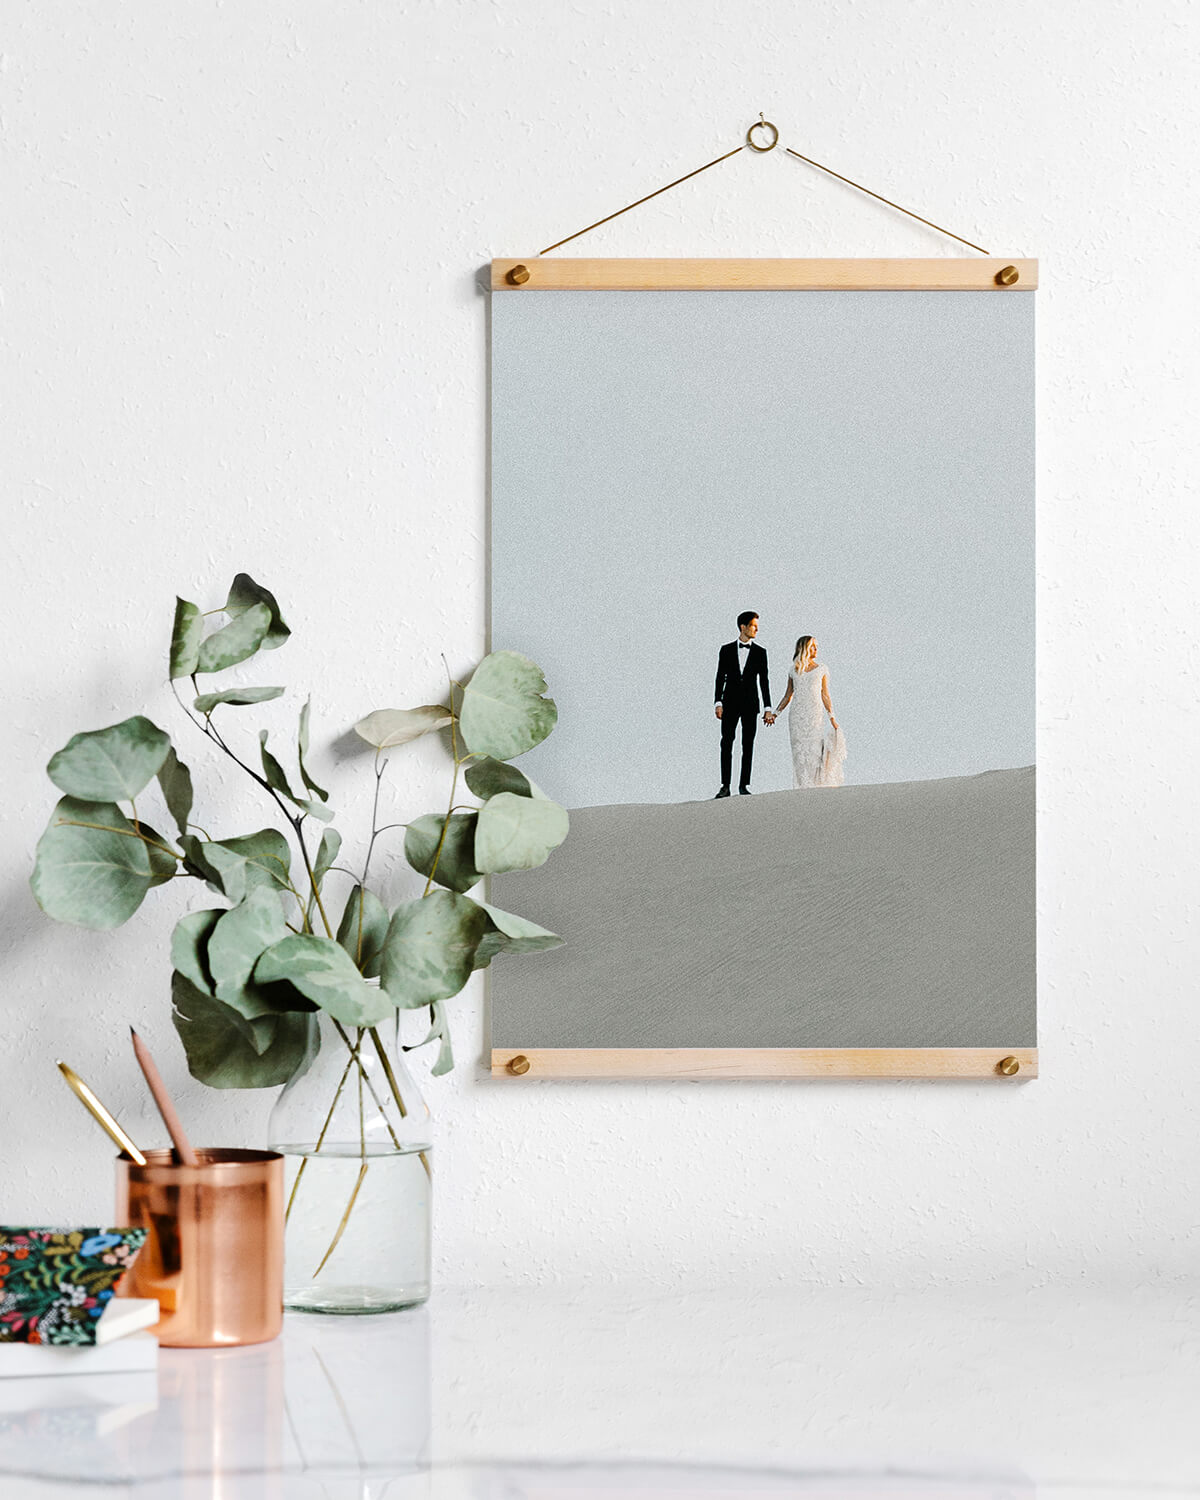 Wooden photo hanger holding print